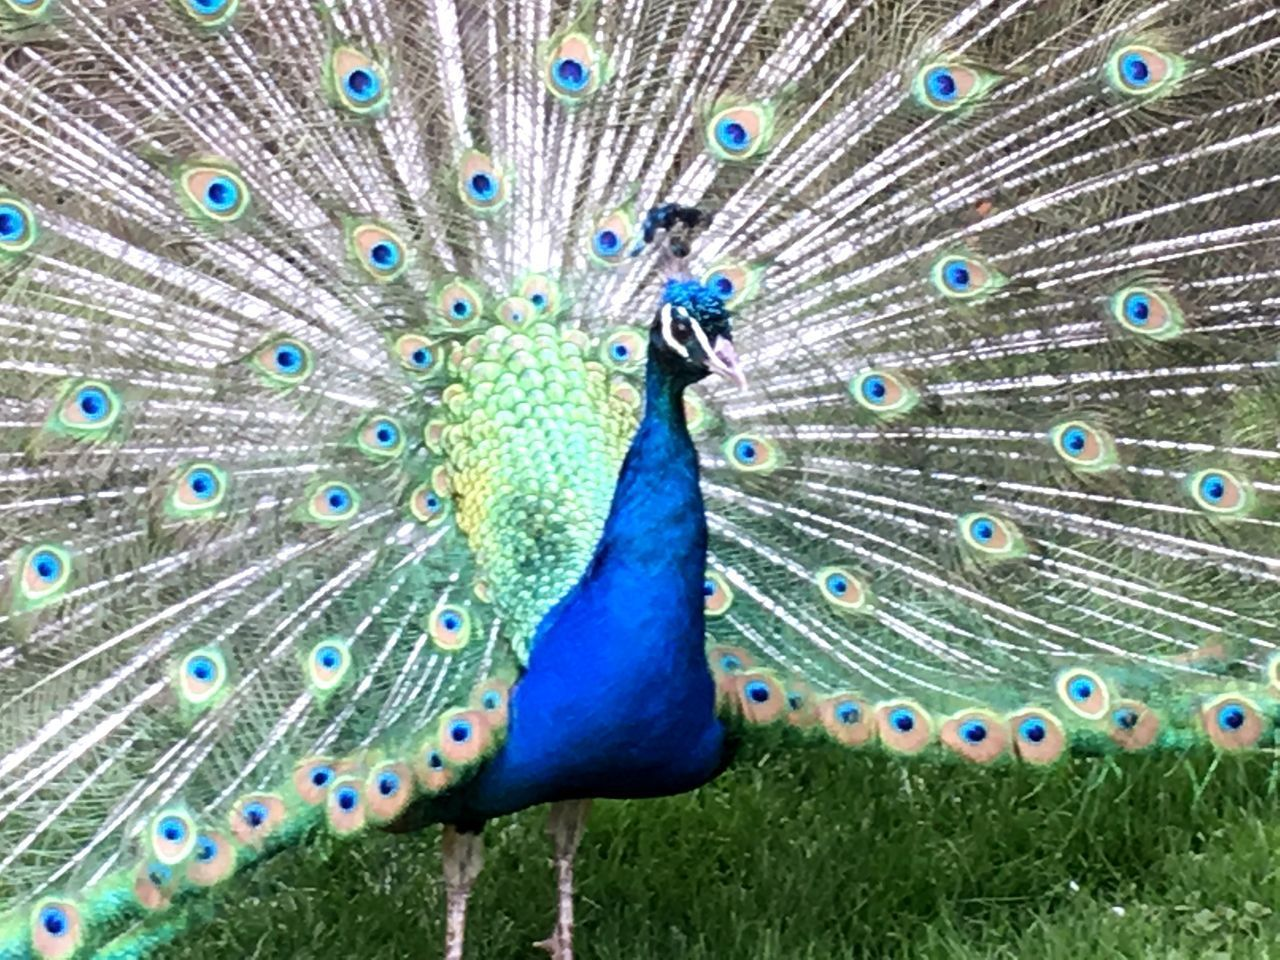 CLOSE-UP OF PEACOCK WITH BLUE FEATHERS